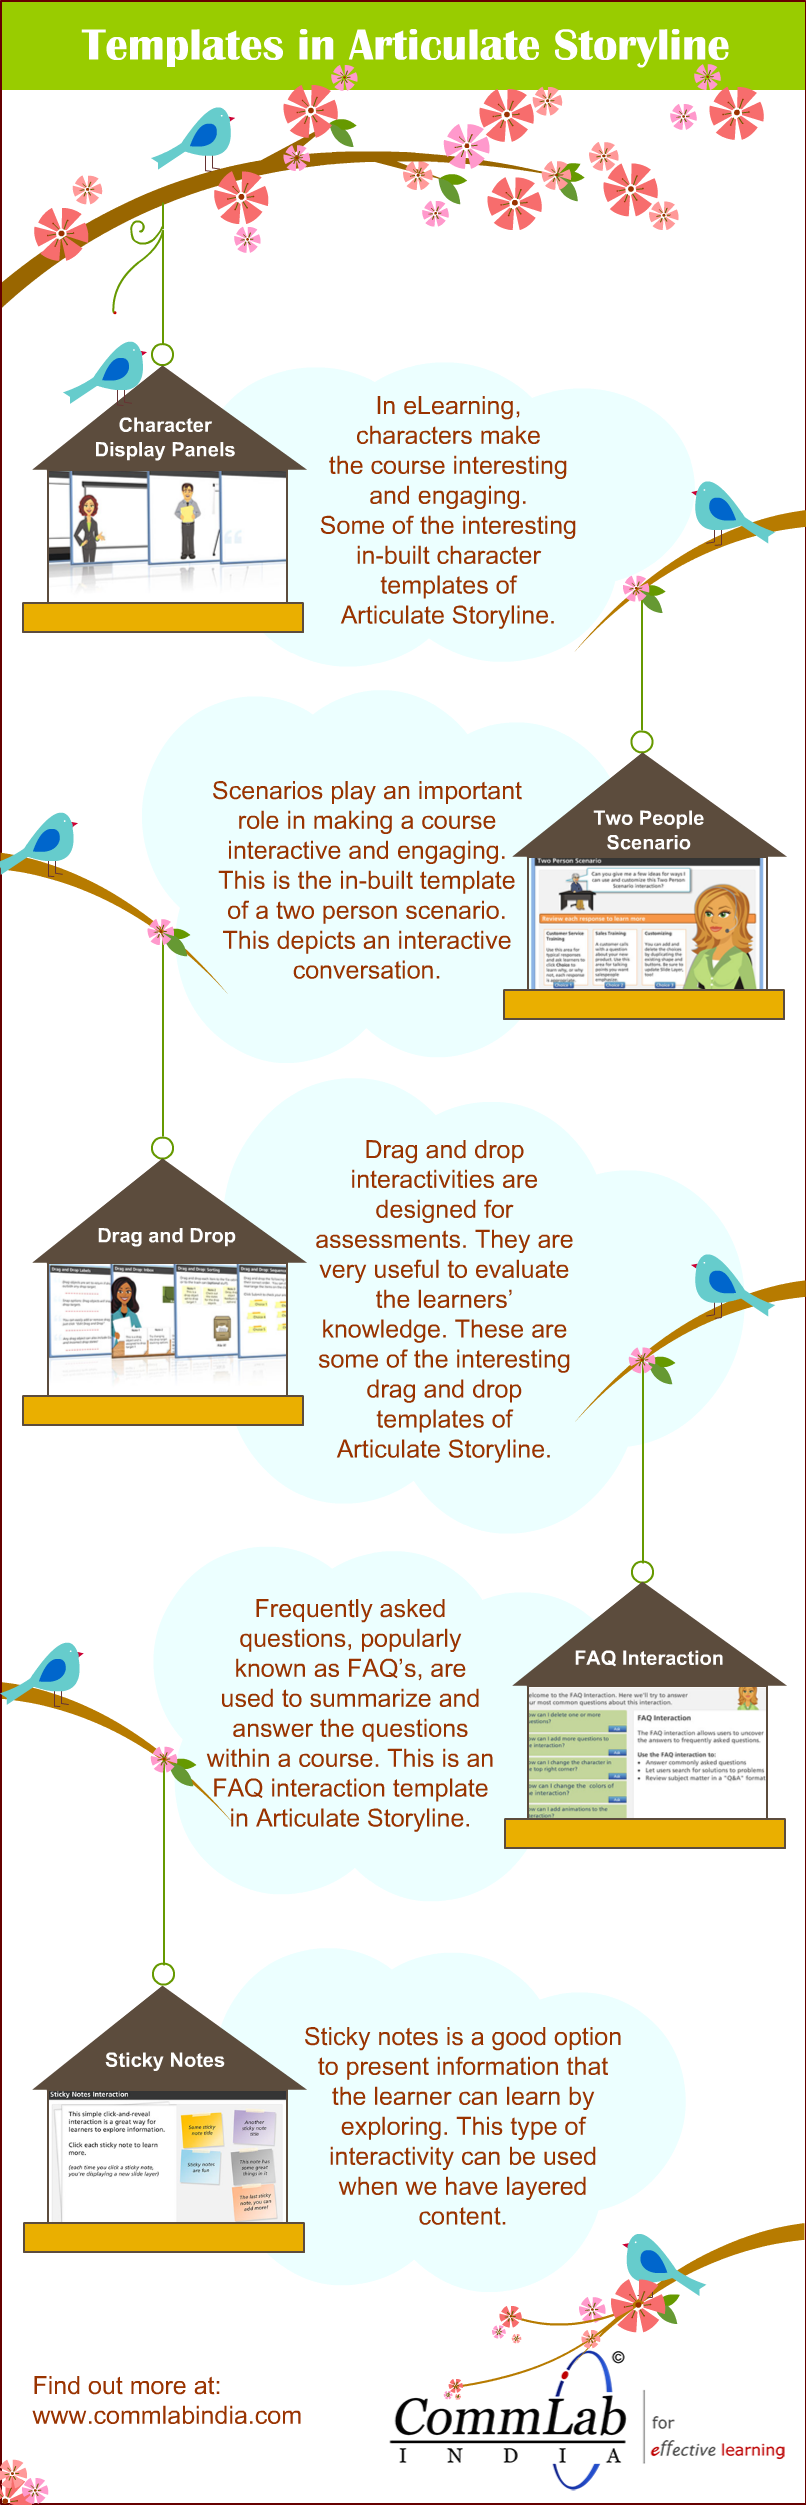 Effective Ways of Using inbuilt-templates in Articulate Storyline – An Infographic